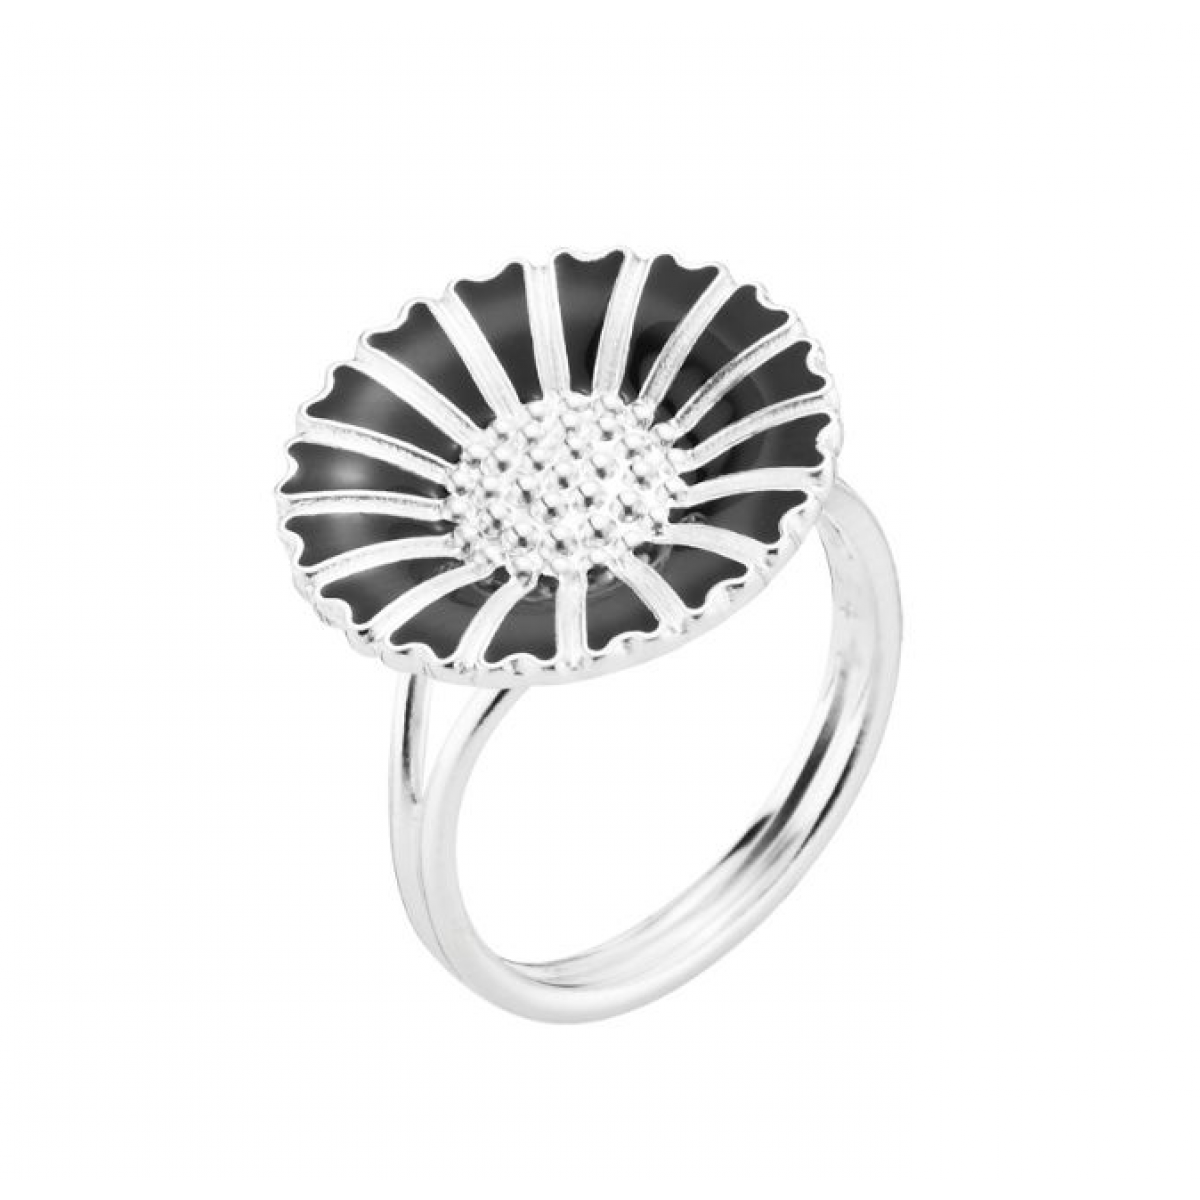 Lund Copenhagen marguerit ring 18 mm sølv/sort 907018-S-3